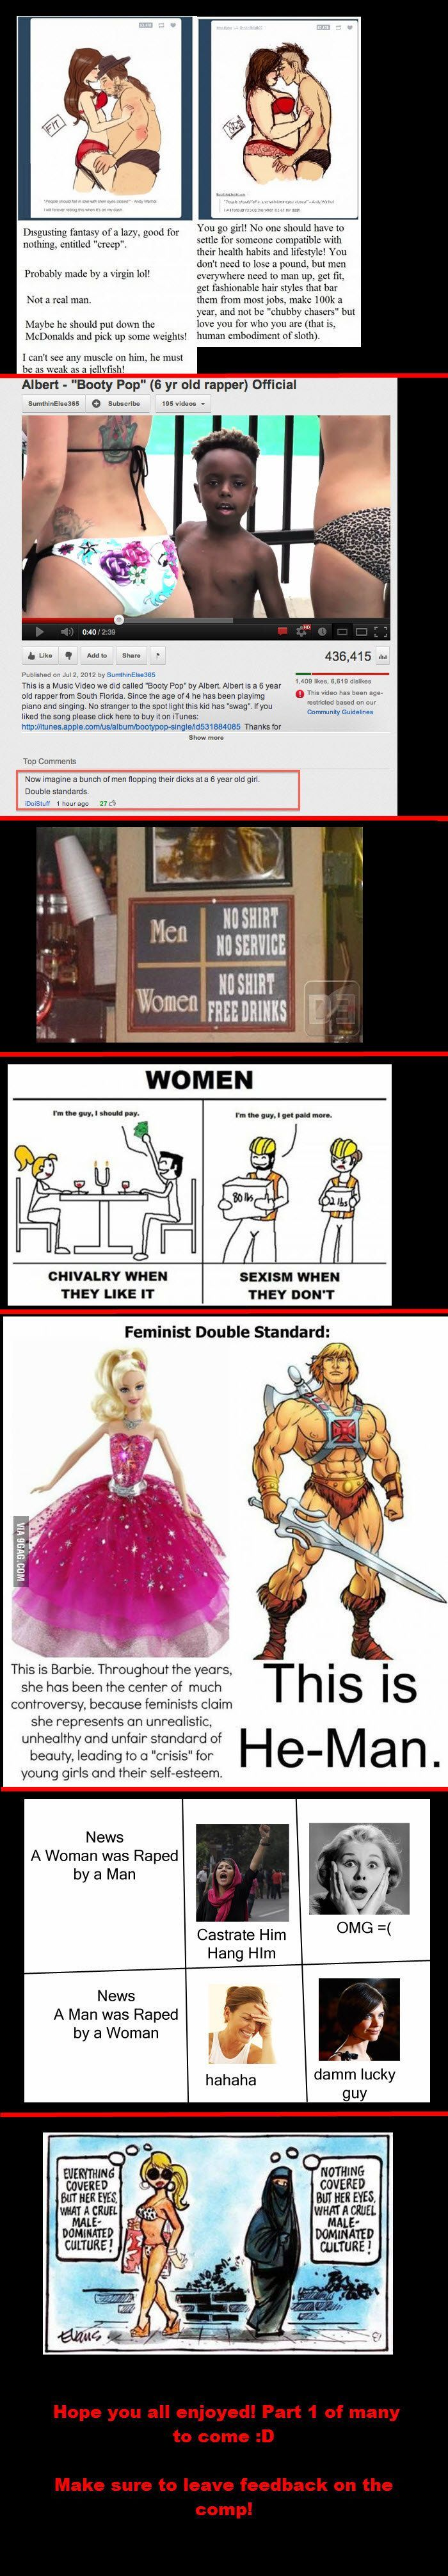 This is why i consider myself to be more of equalist than a feminist. Feminism was made to be about true equality not to make women more important than men